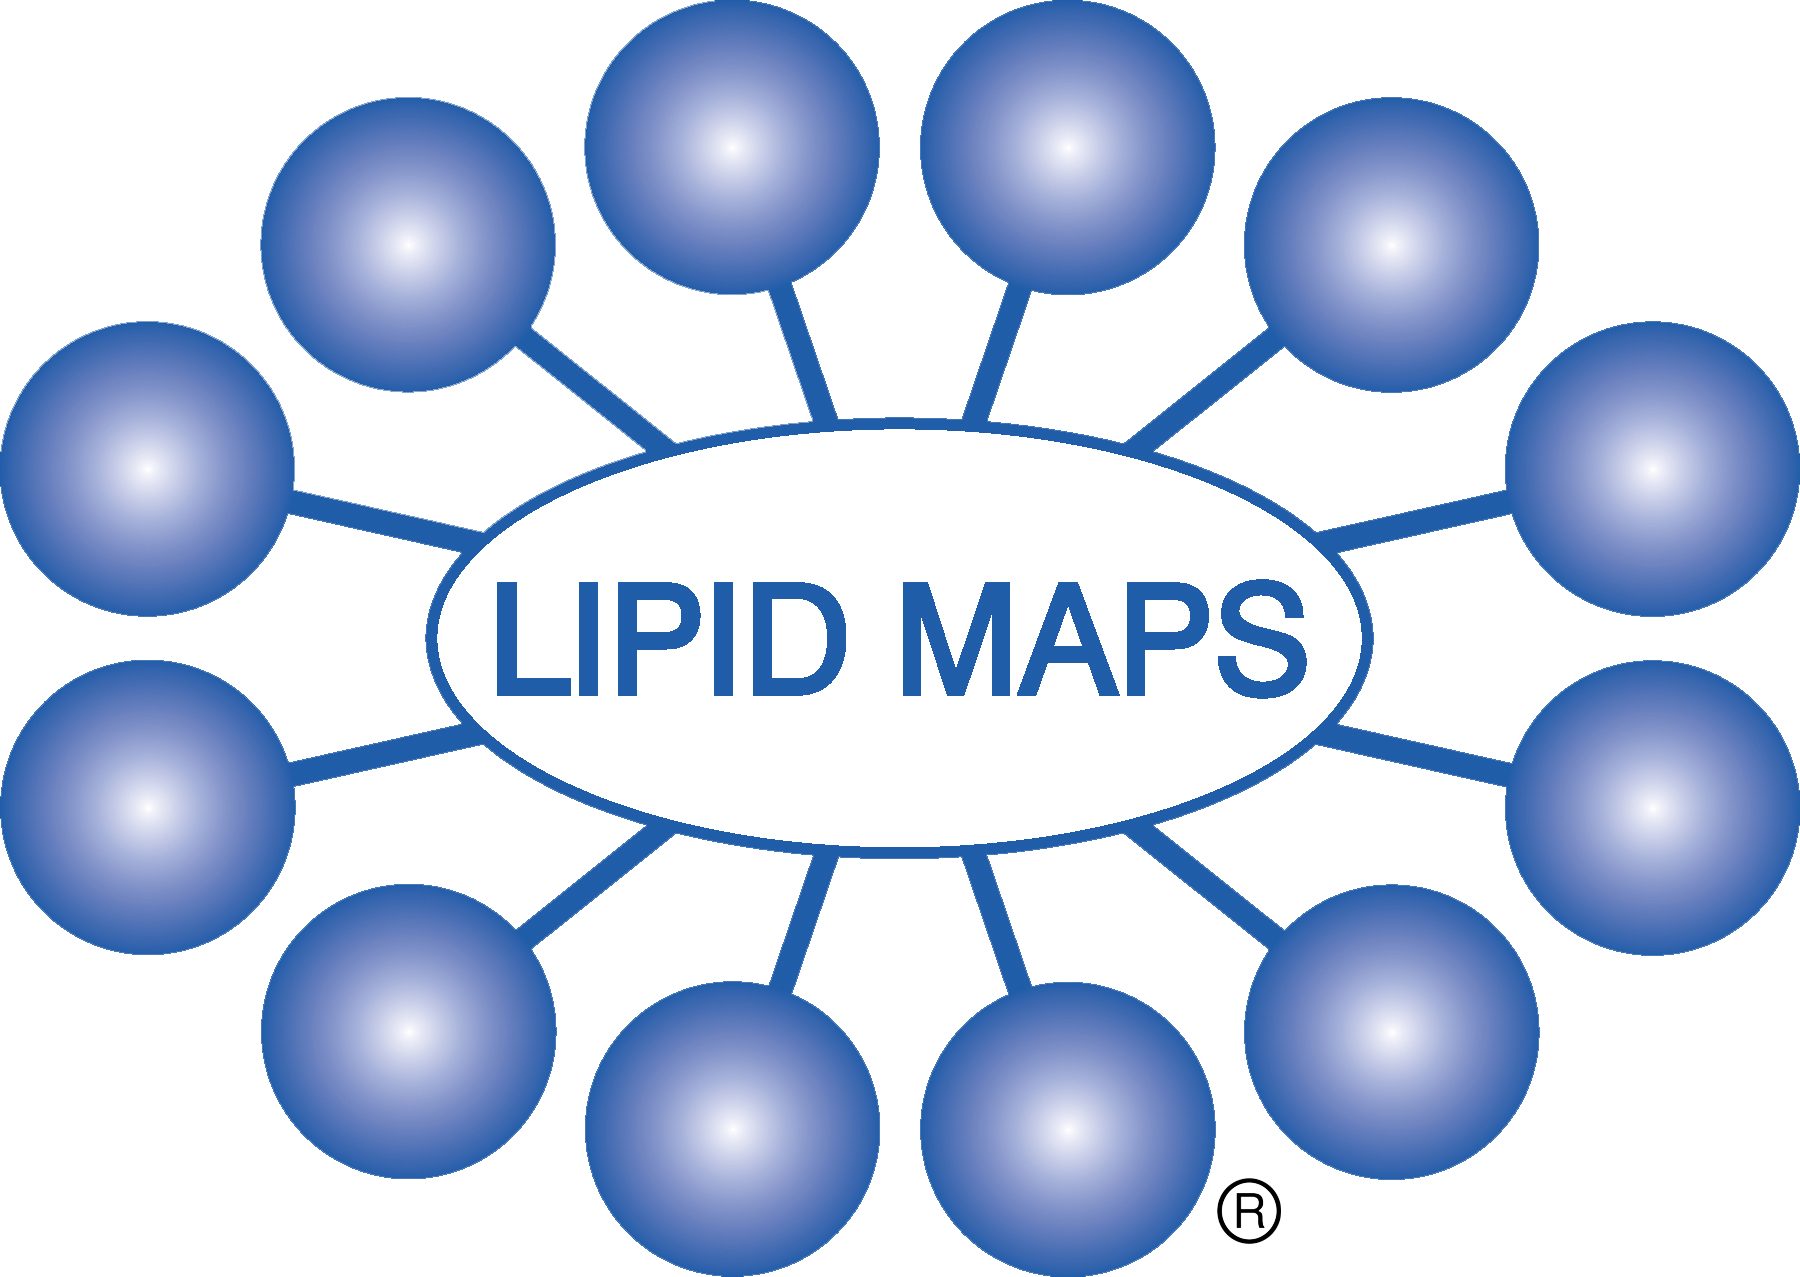 LIPID MAPS® logo